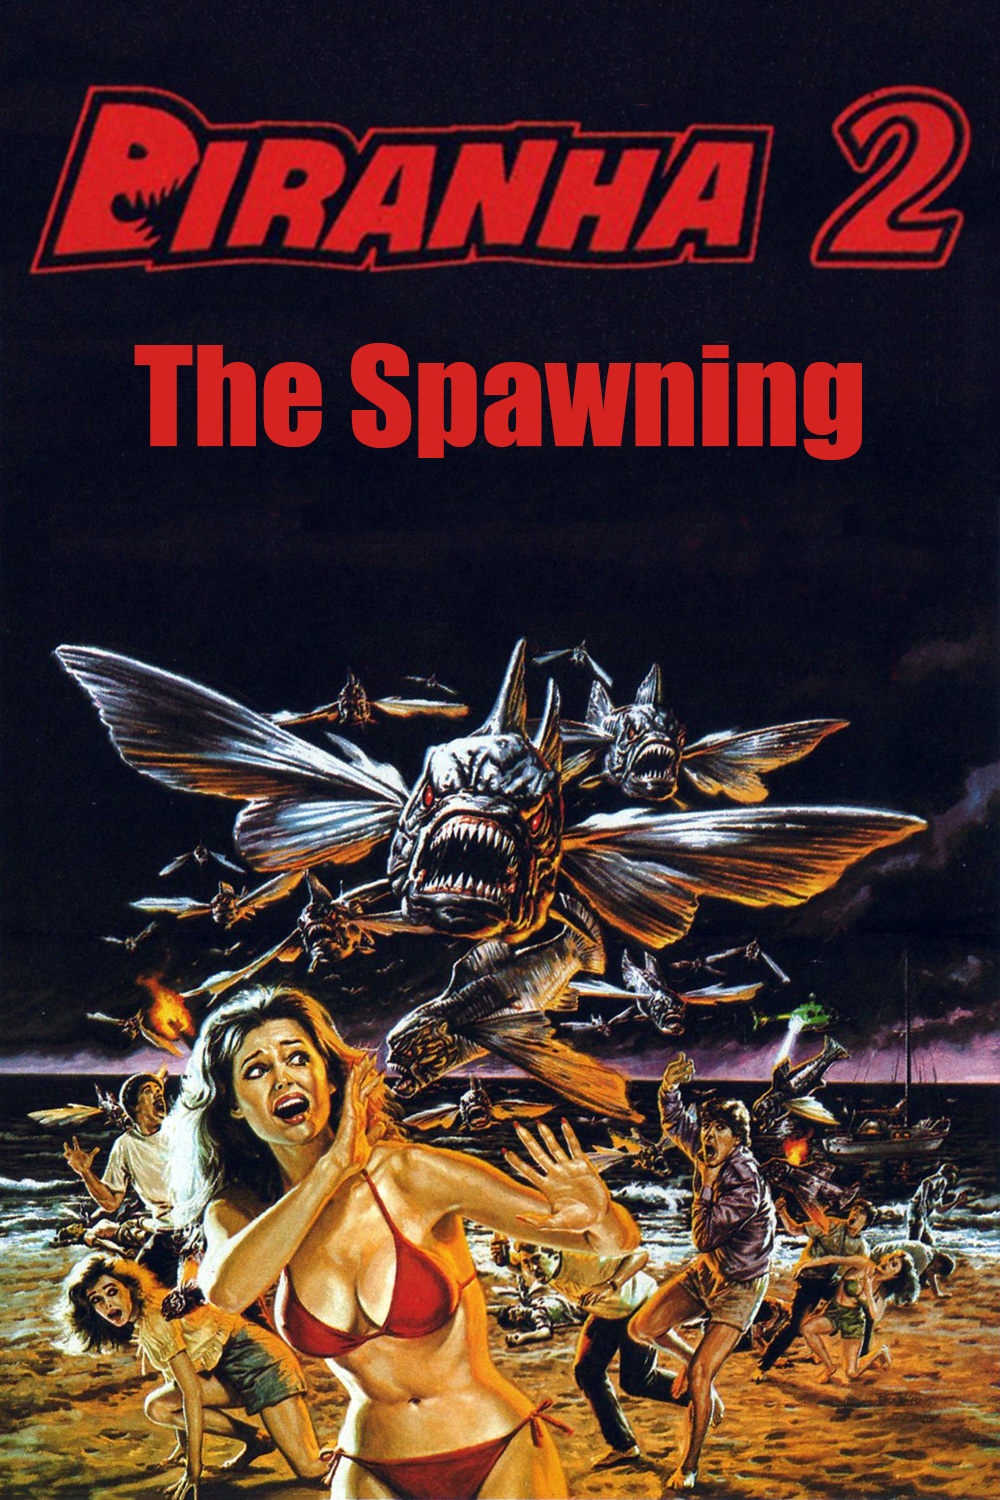 Piranha-Part-Two-The-Spawning-1981-poster.jpg